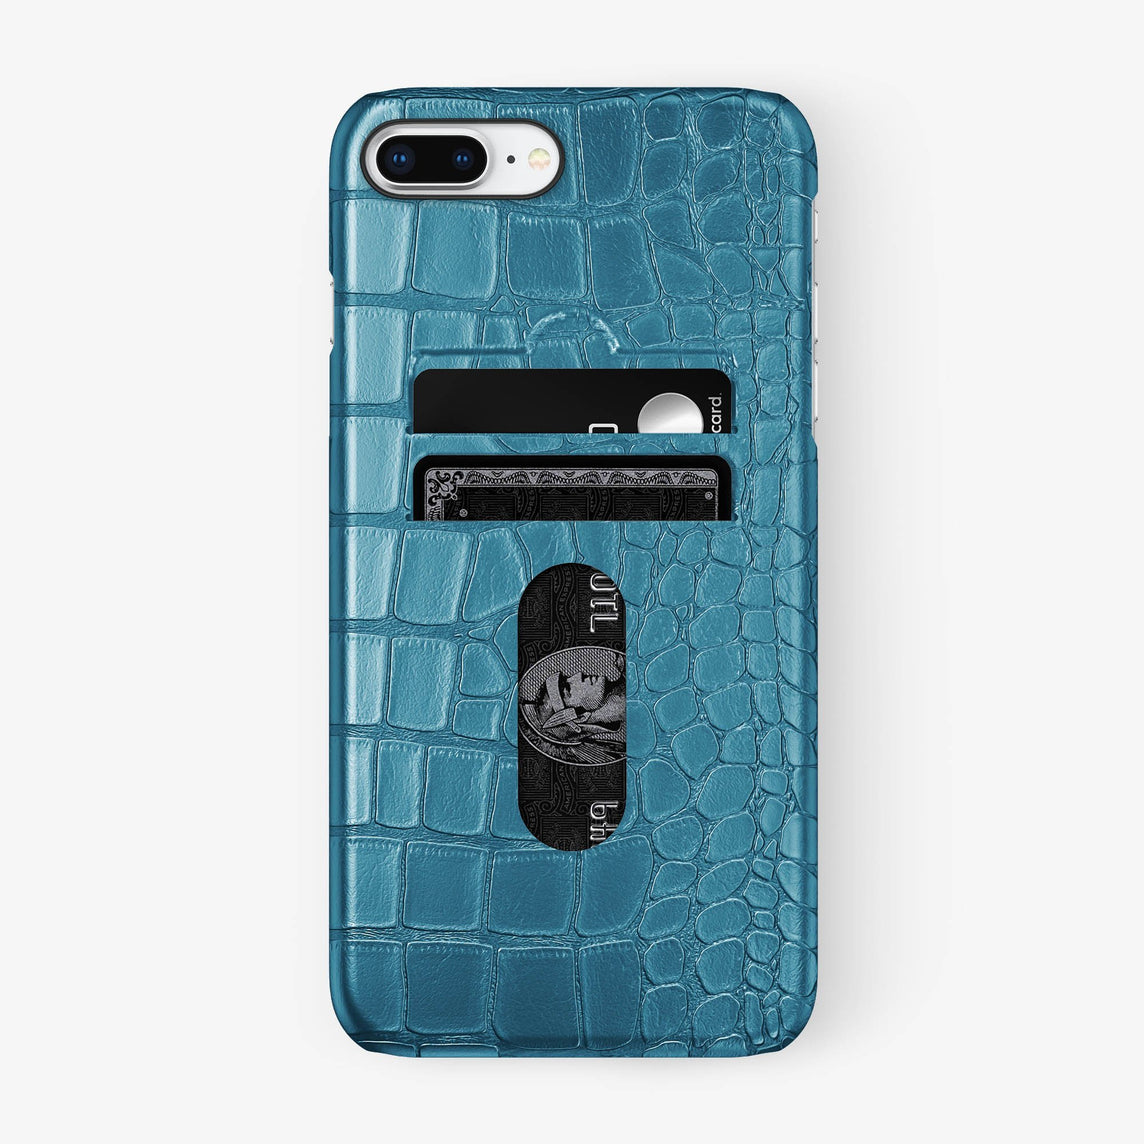 Alligator Card Holder Case iPhone 7/8 Plus | Teal - Black - Hadoro